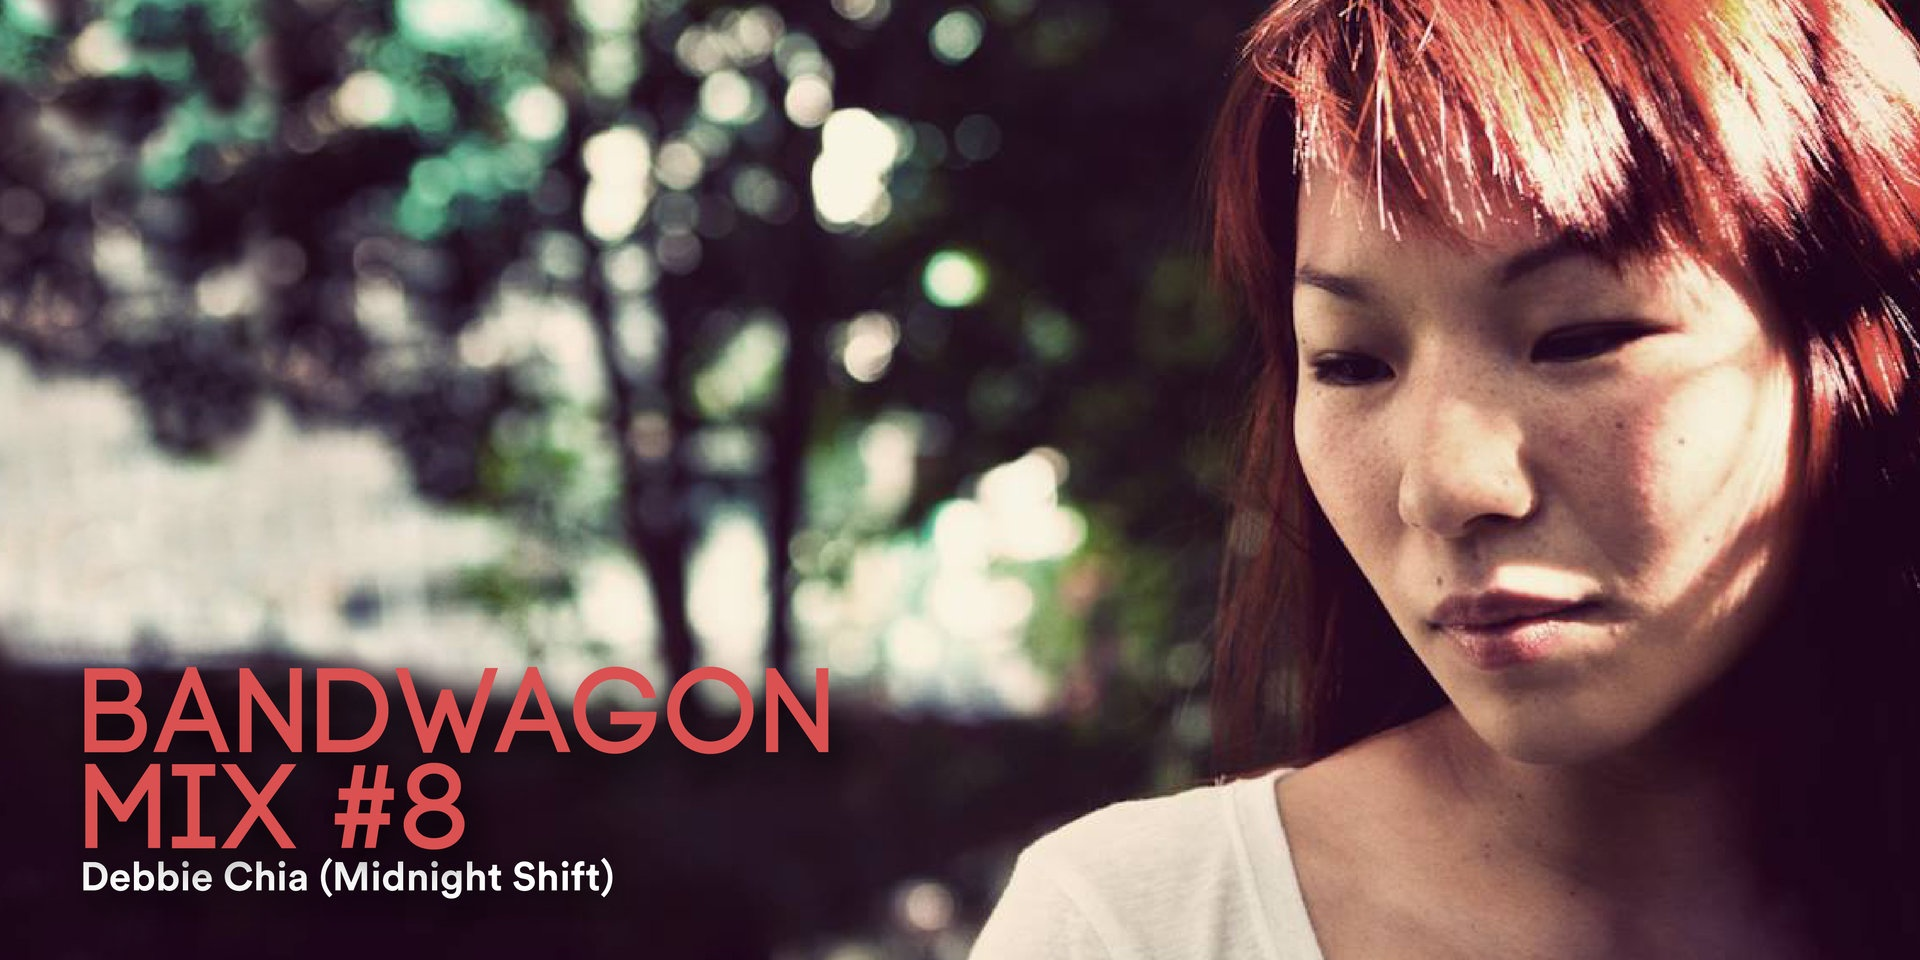 Bandwagon Mix #8: Debbie Chia (Midnight Shift)